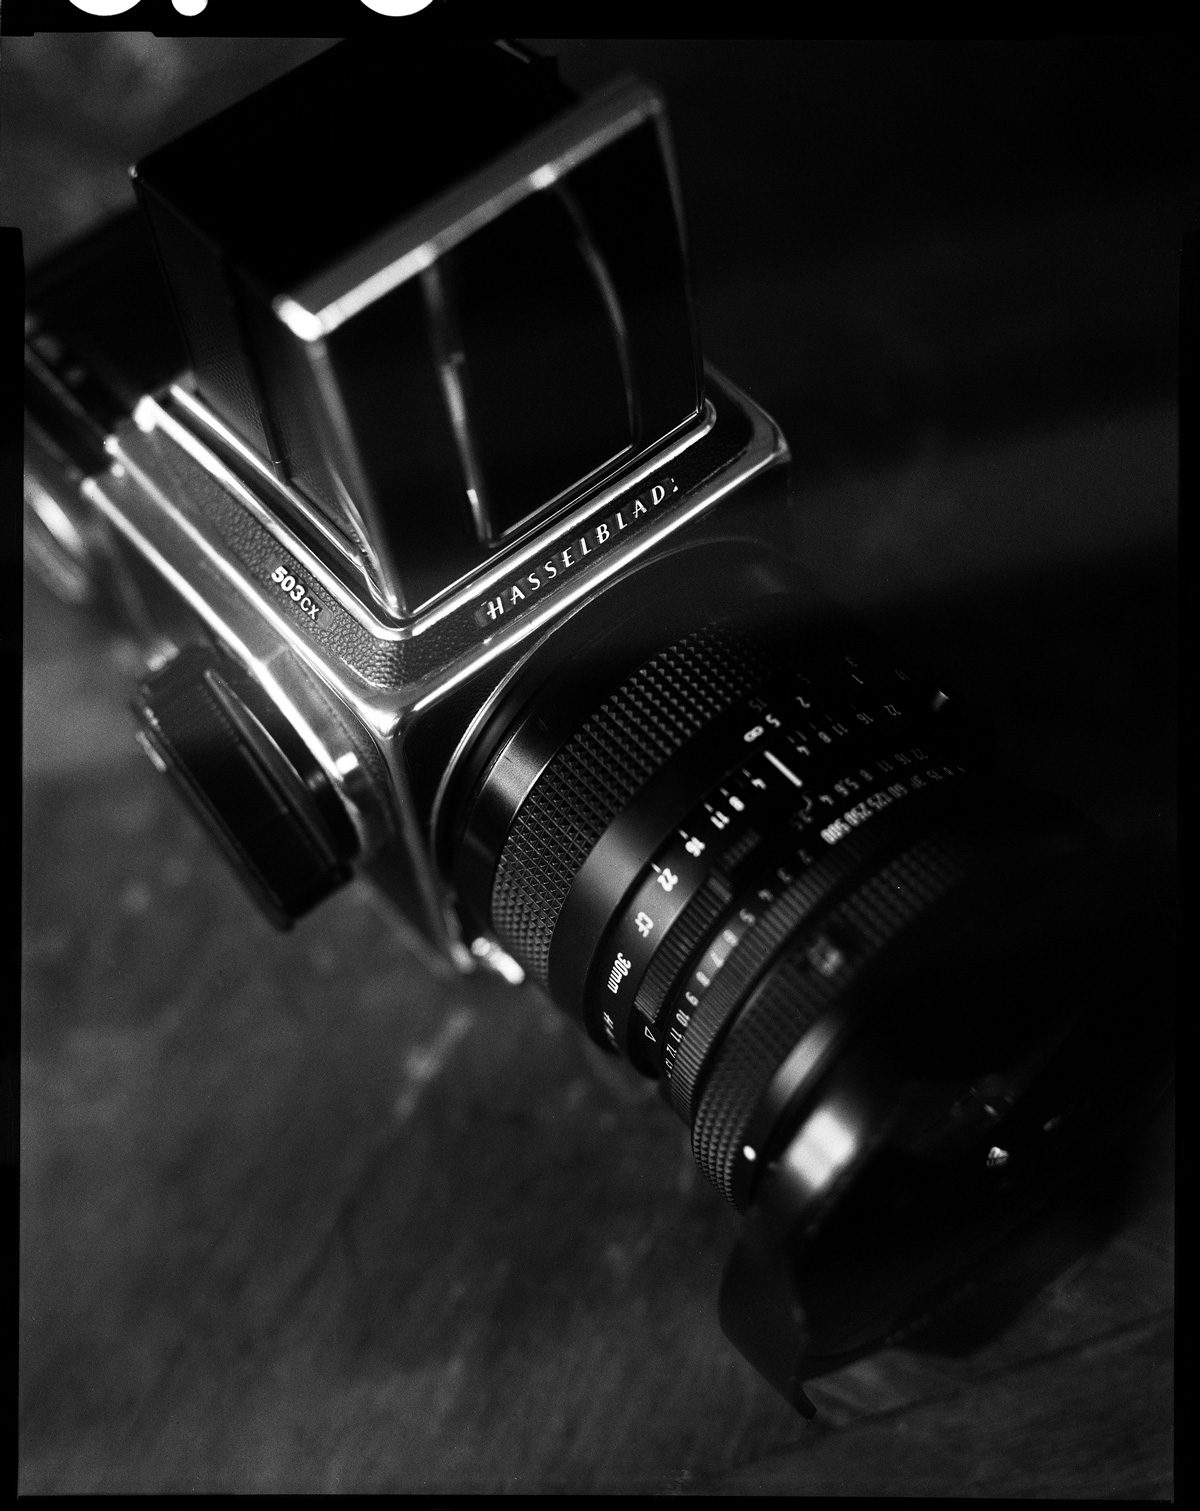 Hasselblad-503CX-with-30mm-Distagon-Lens